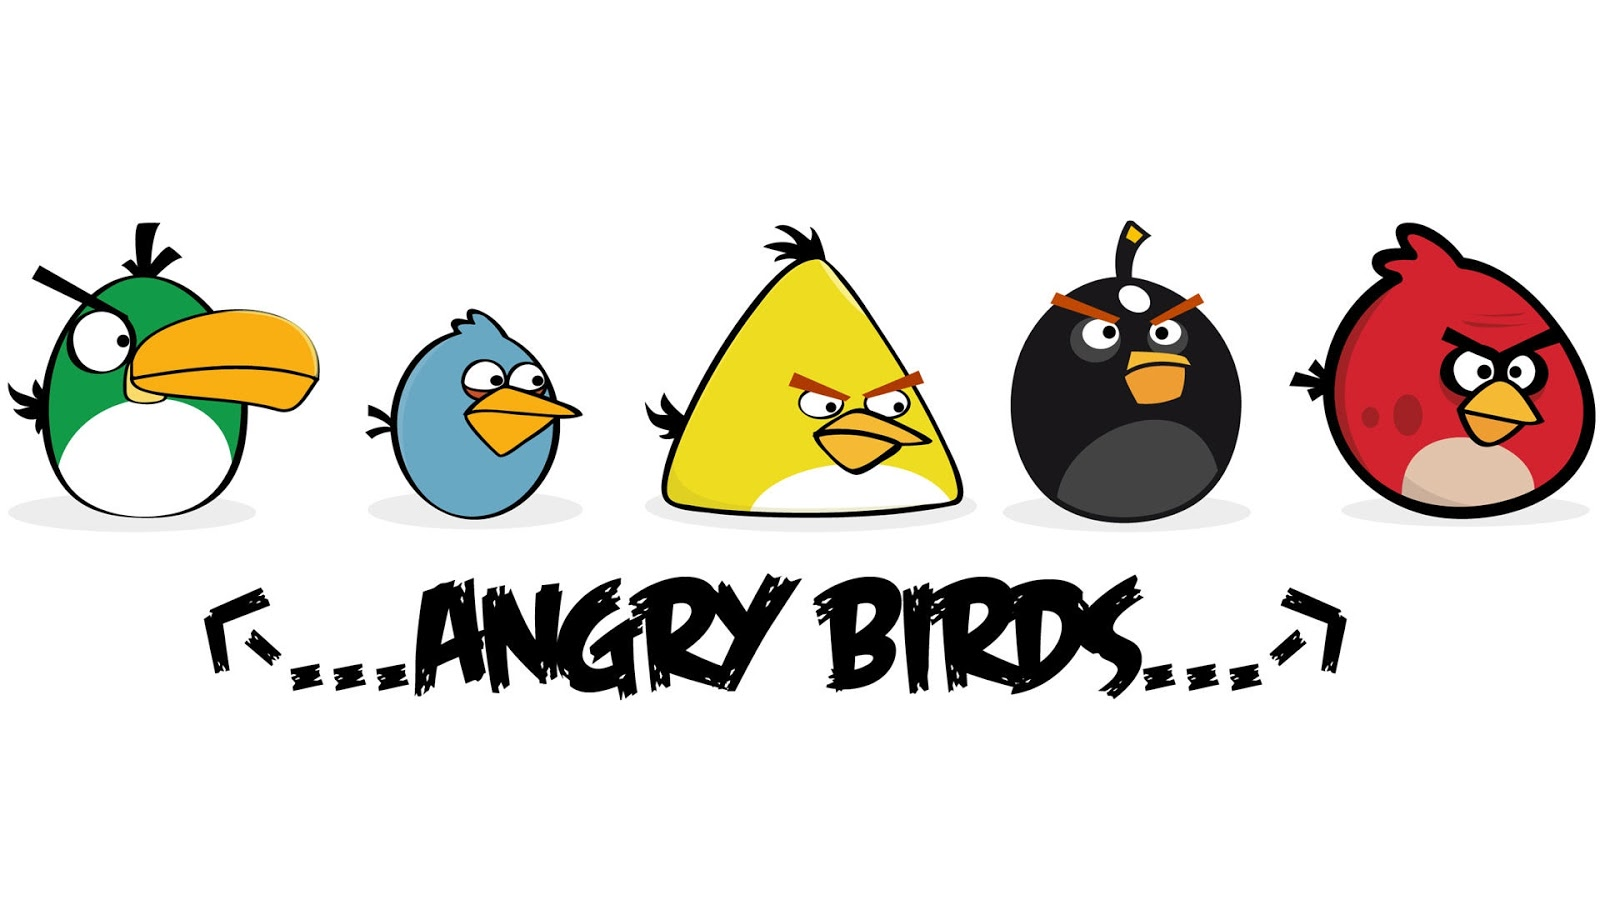 Angry Birds Free Printable Backgrounds Invitations Or Cards